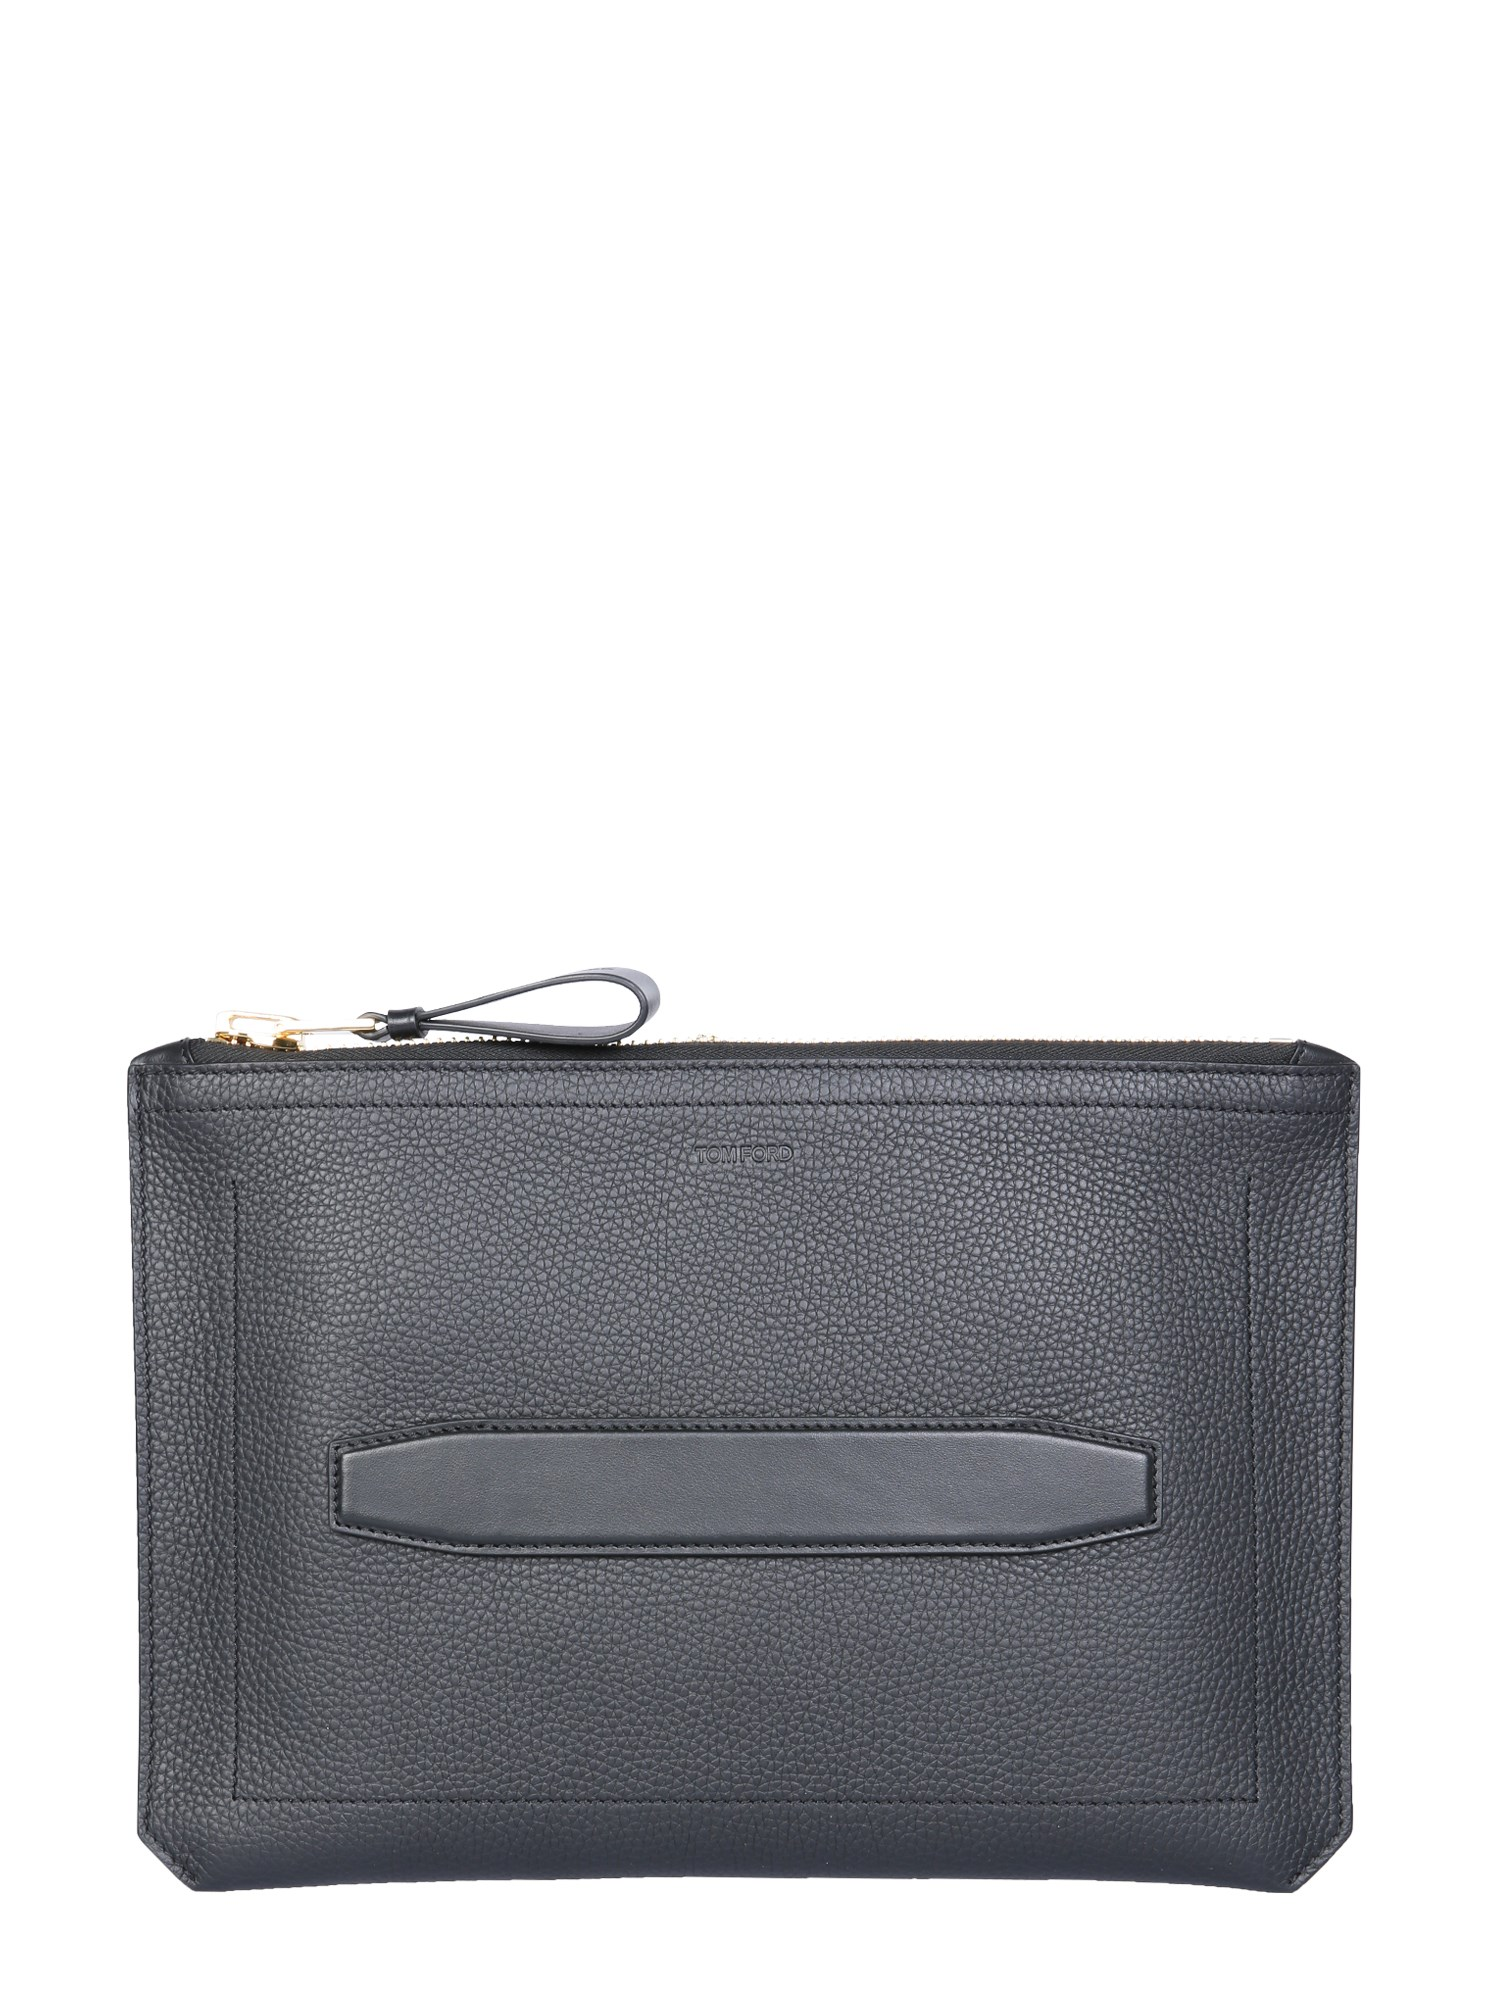 Tom Ford HAMMERED LEATHER POUCH